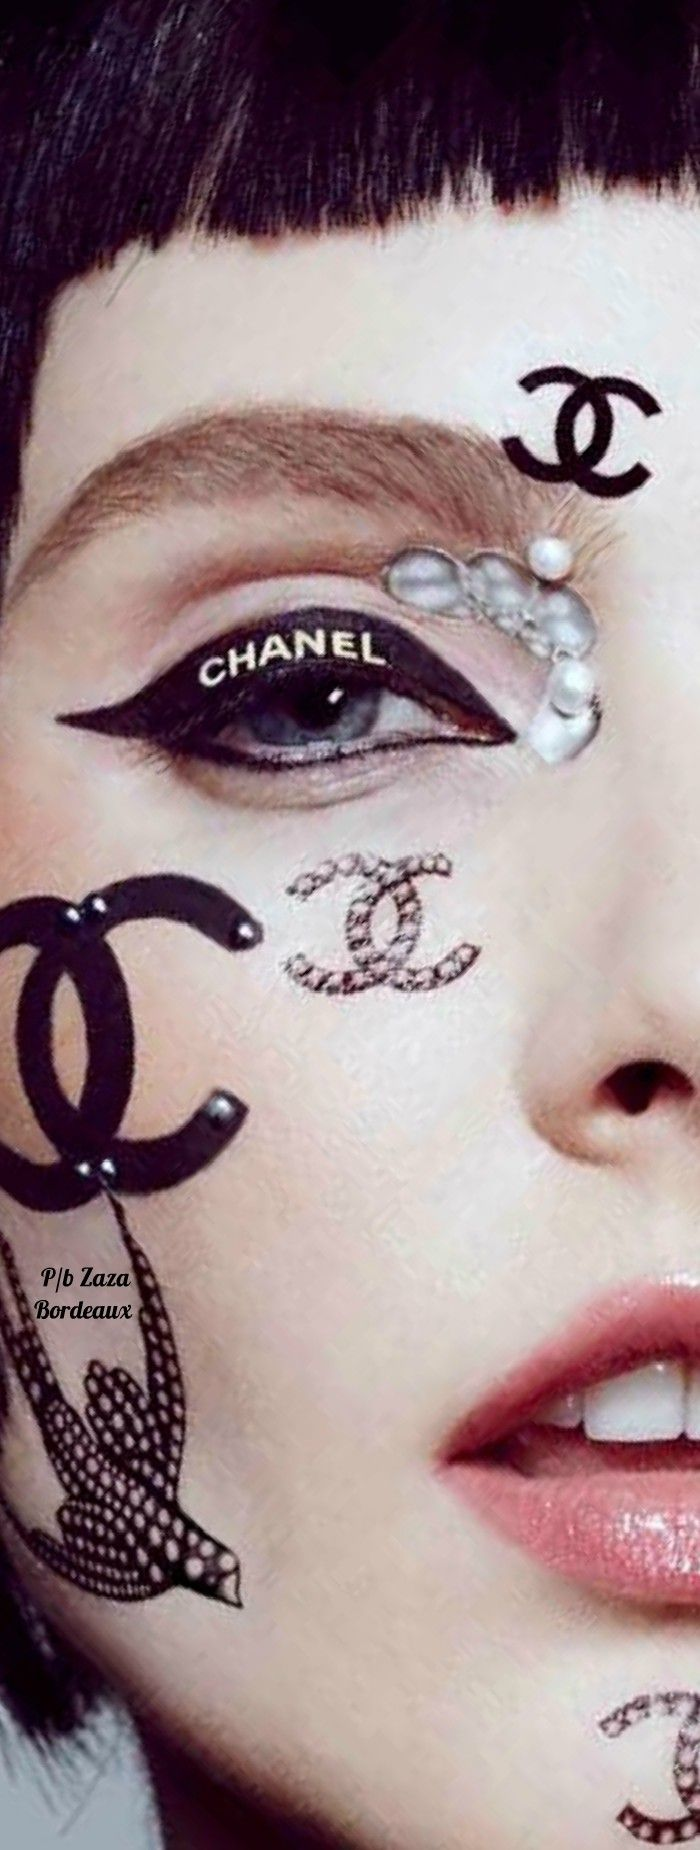 8611d071ed15 「Black of Hearts」おしゃれまとめの人気アイデア|Pinterest |💕💋 ༺❀ Sasha Pariss ❀༻ 🍷☕ 💕【 2019】 | Chanel fashion、Chanel、Coco chanel